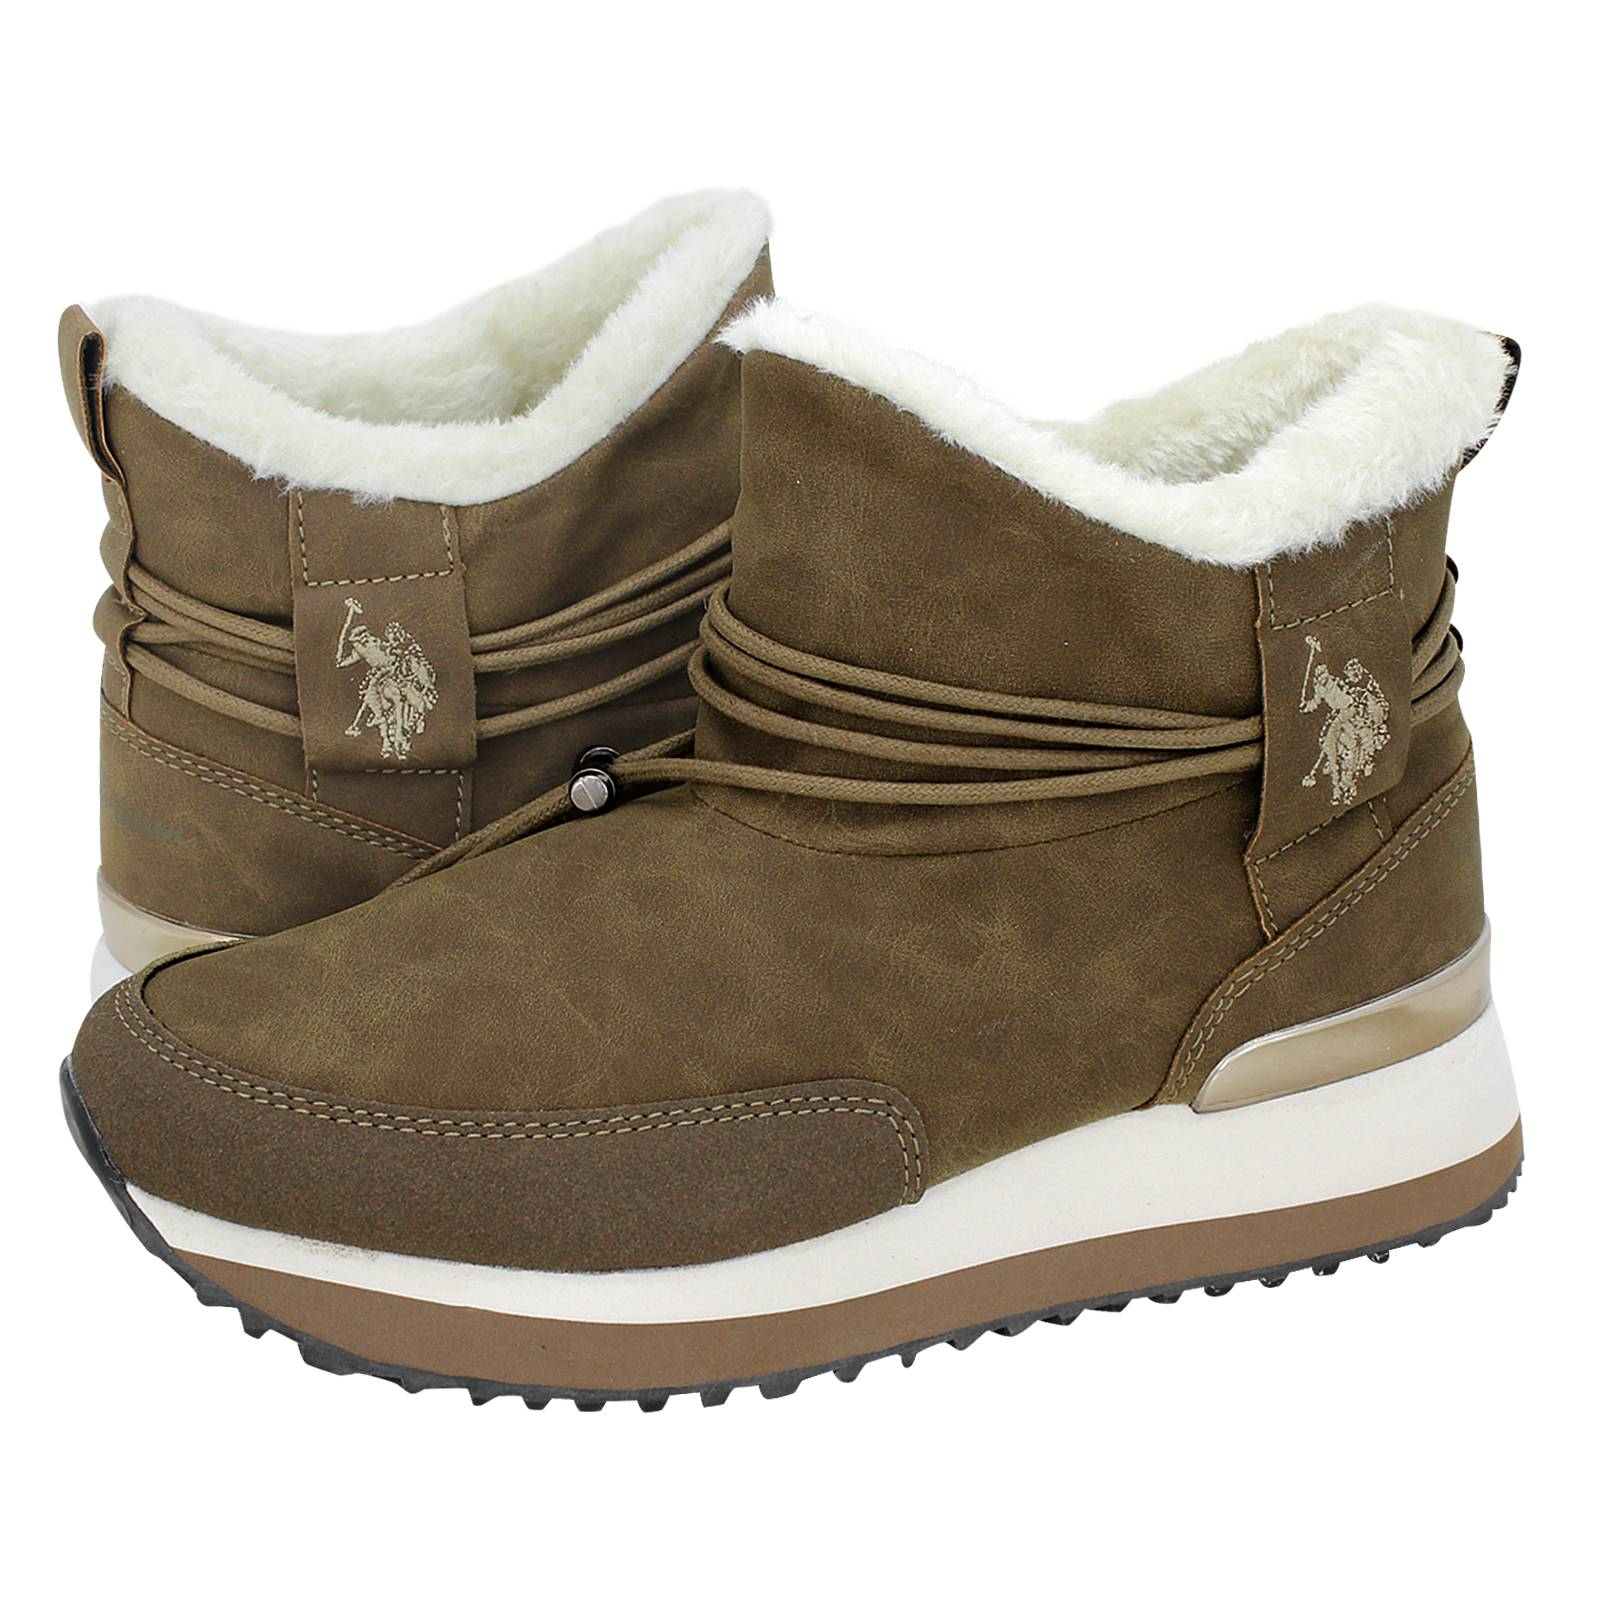 1c737bda2191 Vanessa - U.S. Polo ASSN Women s casual low boots made of synthetic ...